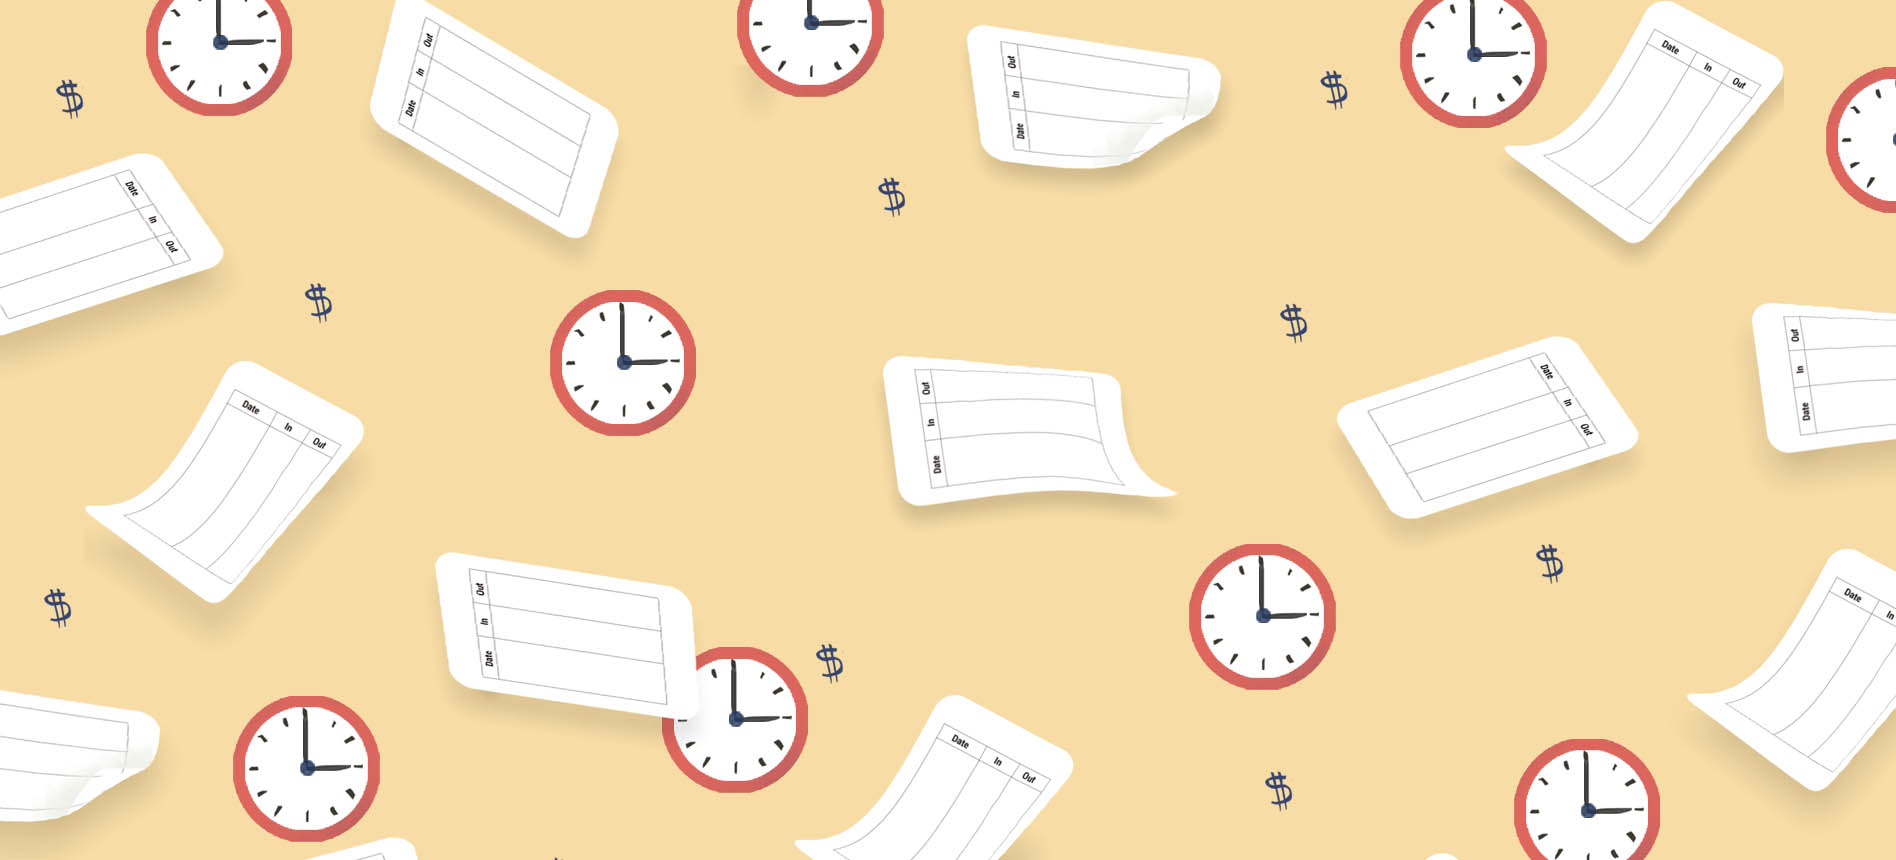 How much are paper timesheets costing your company?